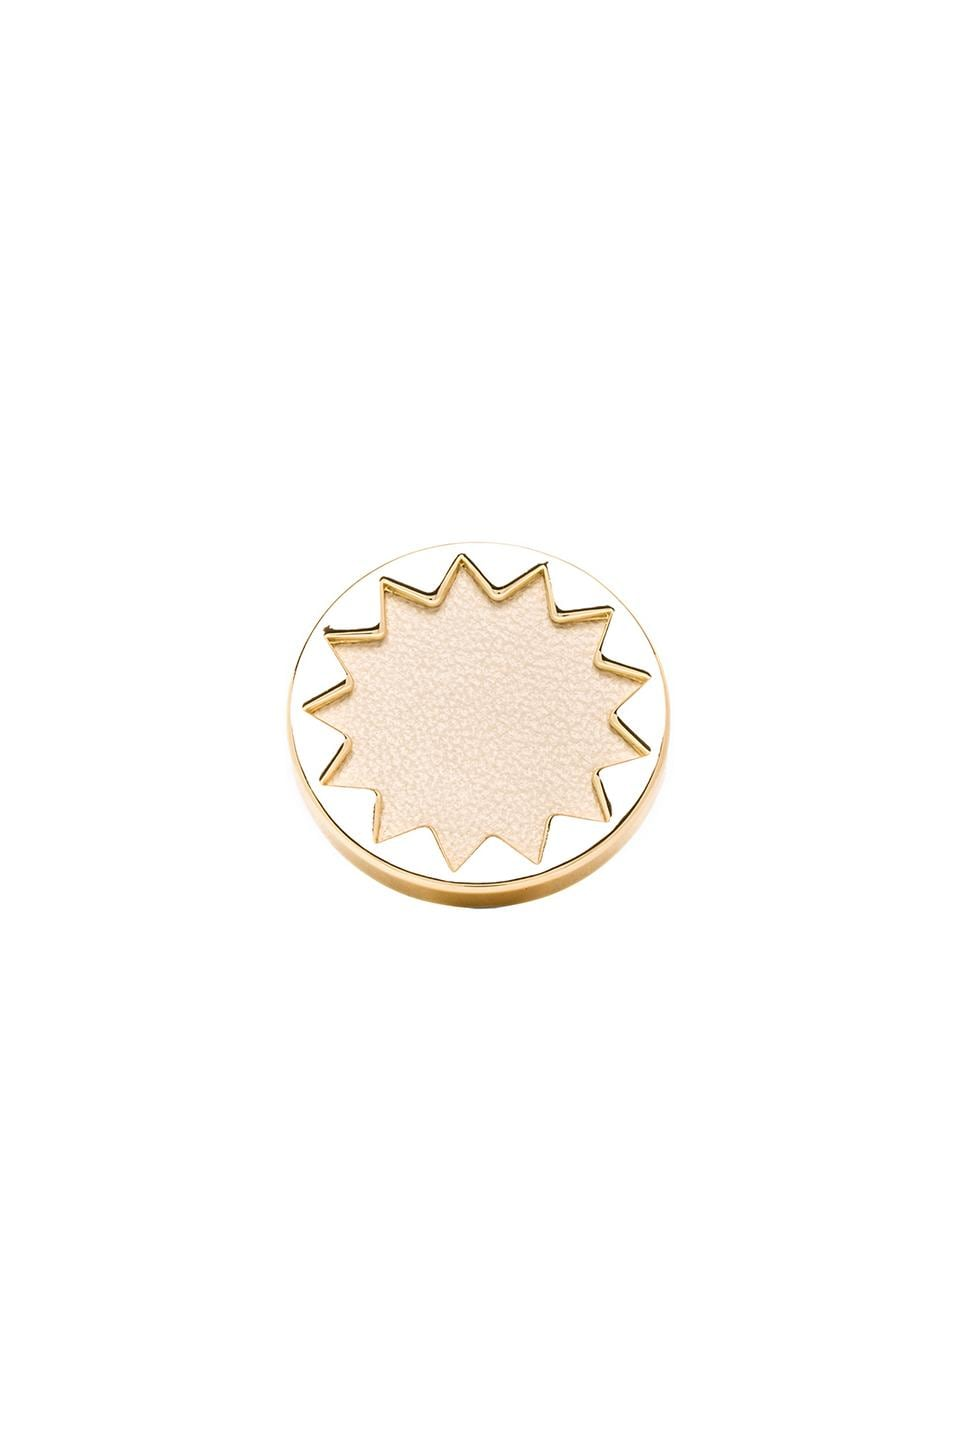 House of Harlow 1960 House of Harlow Mini Sunburst Ring in Gold Tone Cream